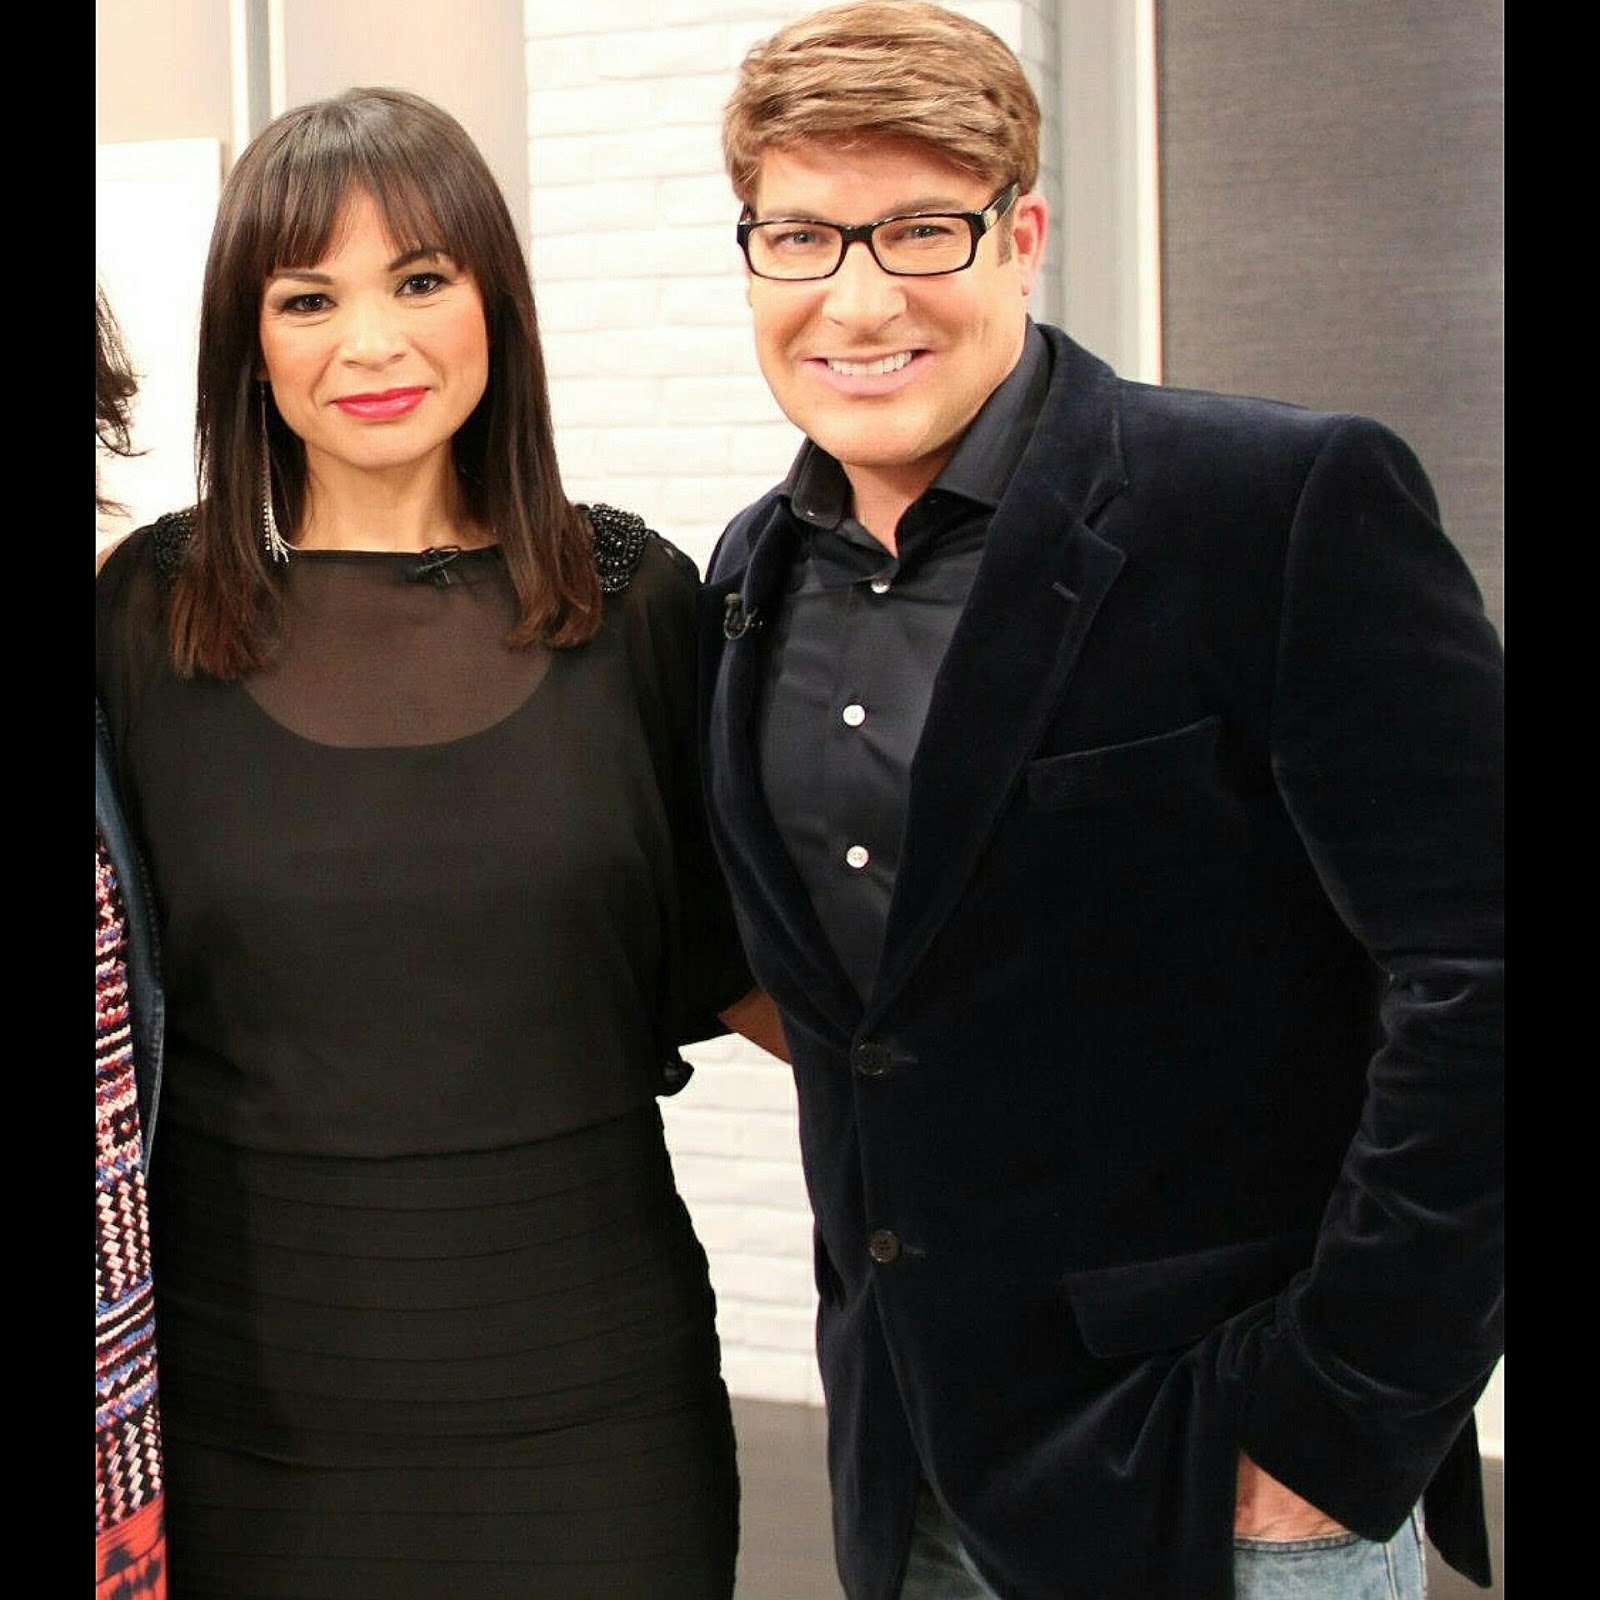 Chris hyndman hair piece - I Just Learned That Chris Hyndman Passed Away Early This Morning What A Very Sad Tragedy He Was So Vivacious And Full Of Energy And Life